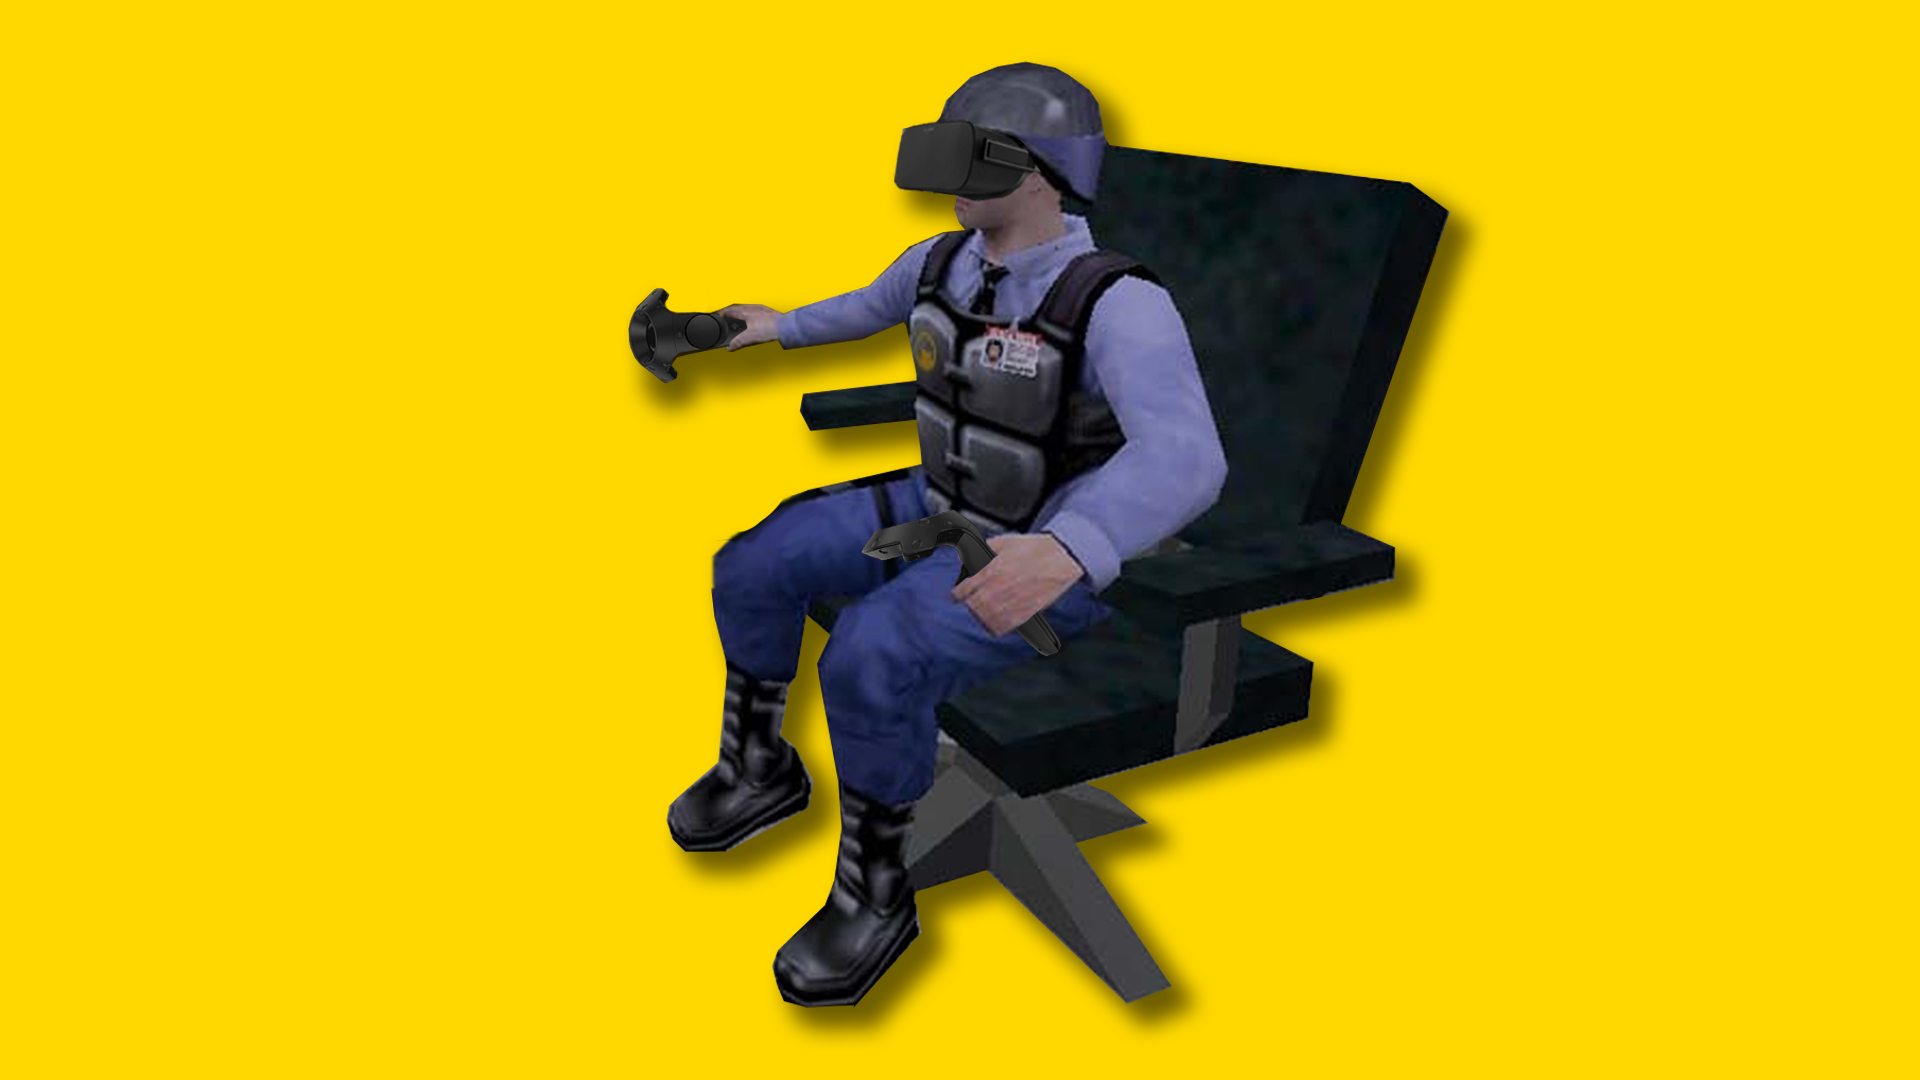 Half-life: Alyx Is Still Good, Even While Sitting In A Chair